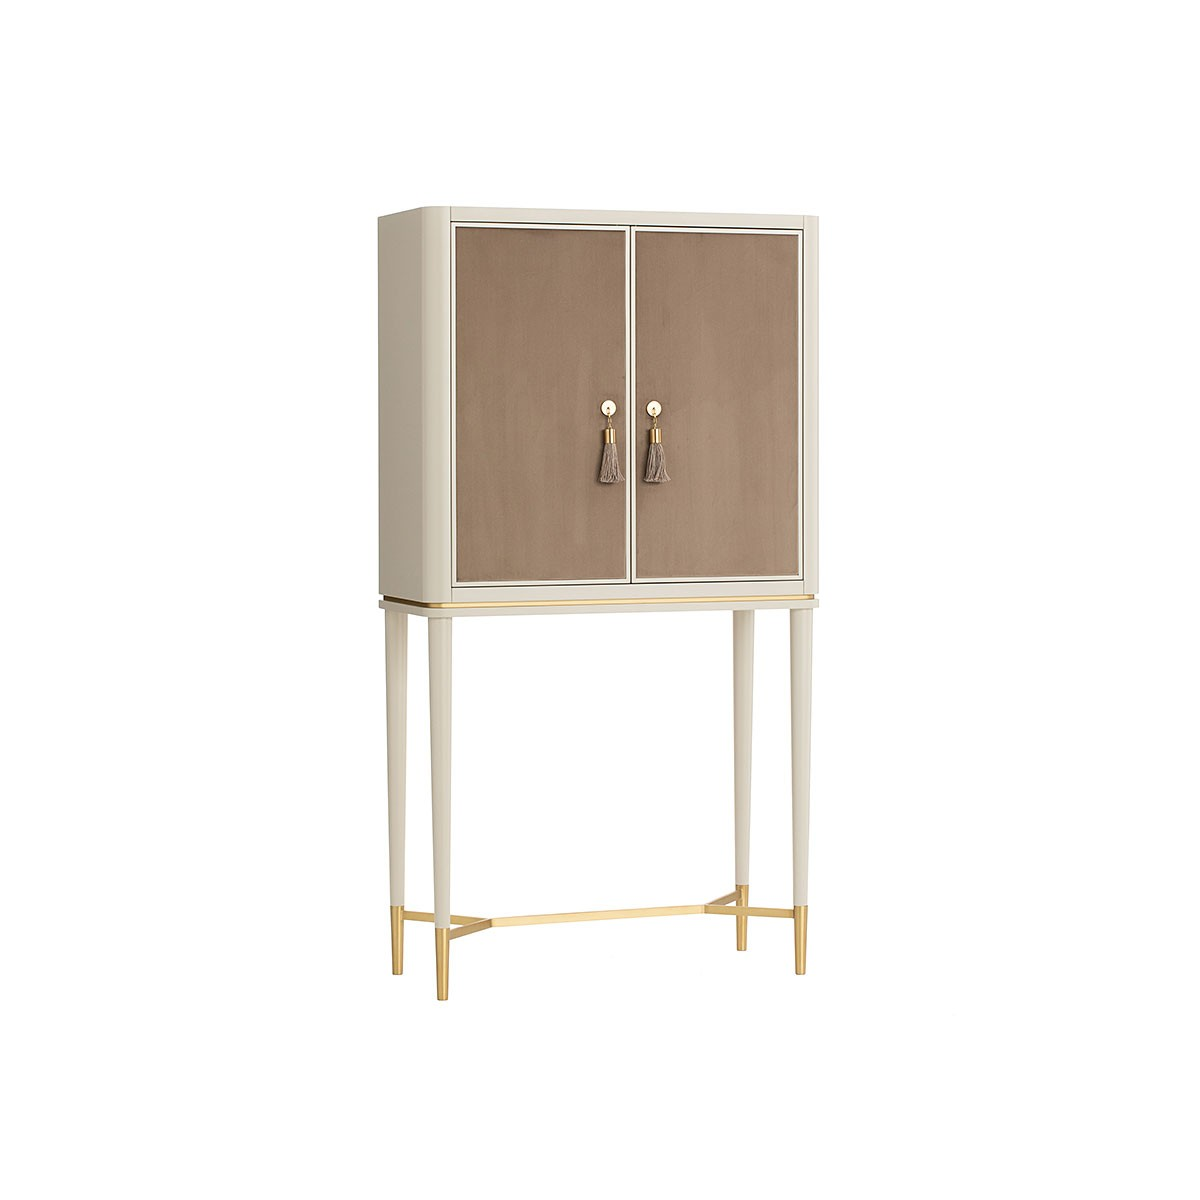 The Adriano Bar Cabinet